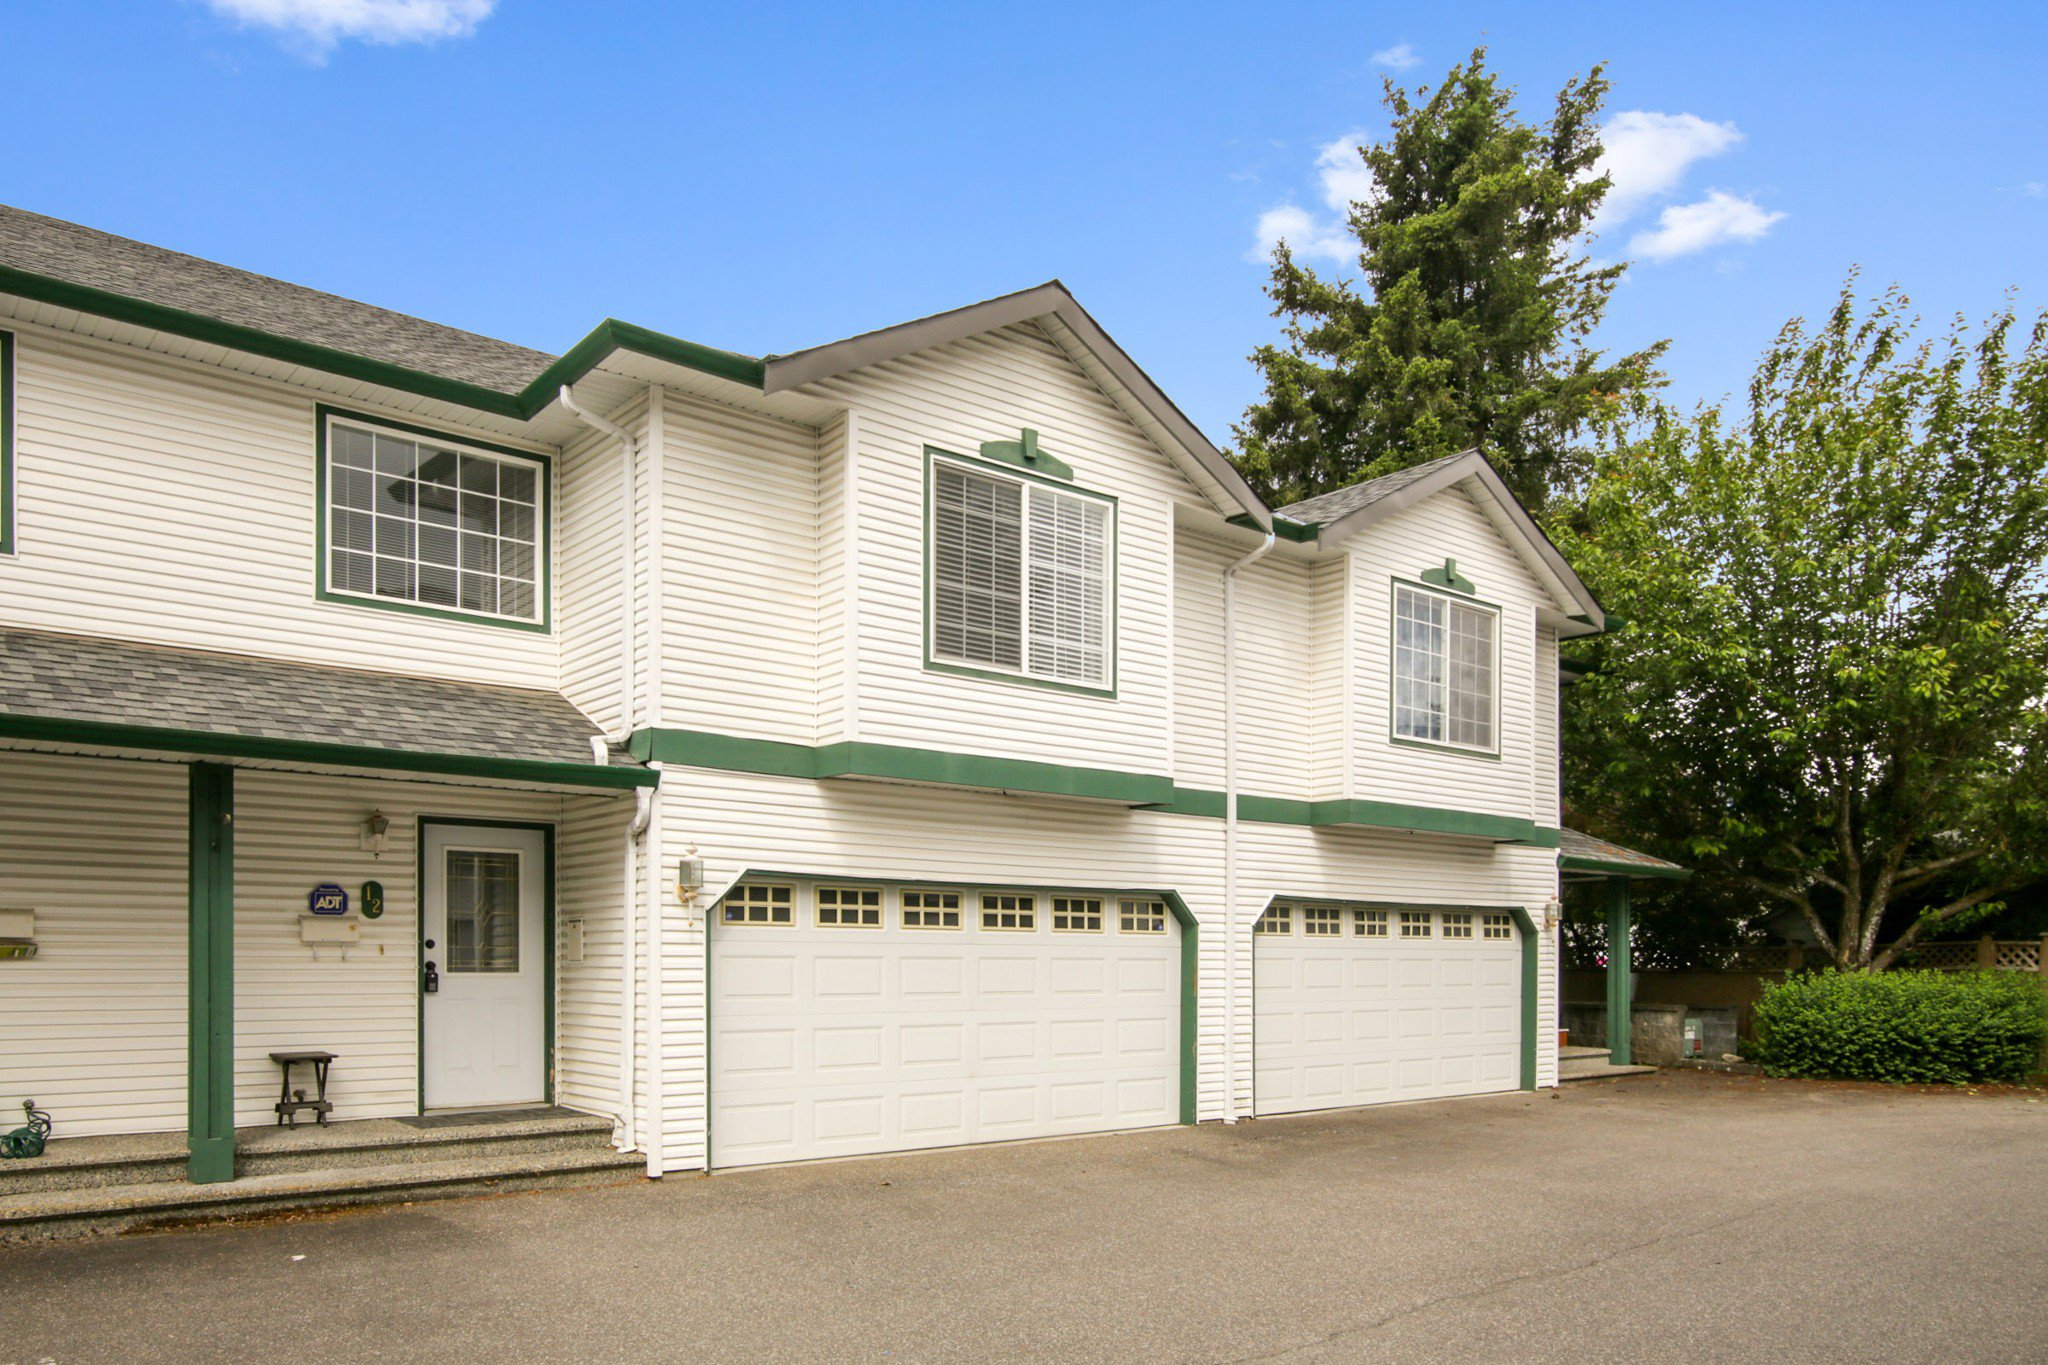 """Main Photo: 12 45932 LEWIS Avenue in Chilliwack: Chilliwack N Yale-Well Townhouse for sale in """"Orchard Lane"""" : MLS®# R2459187"""